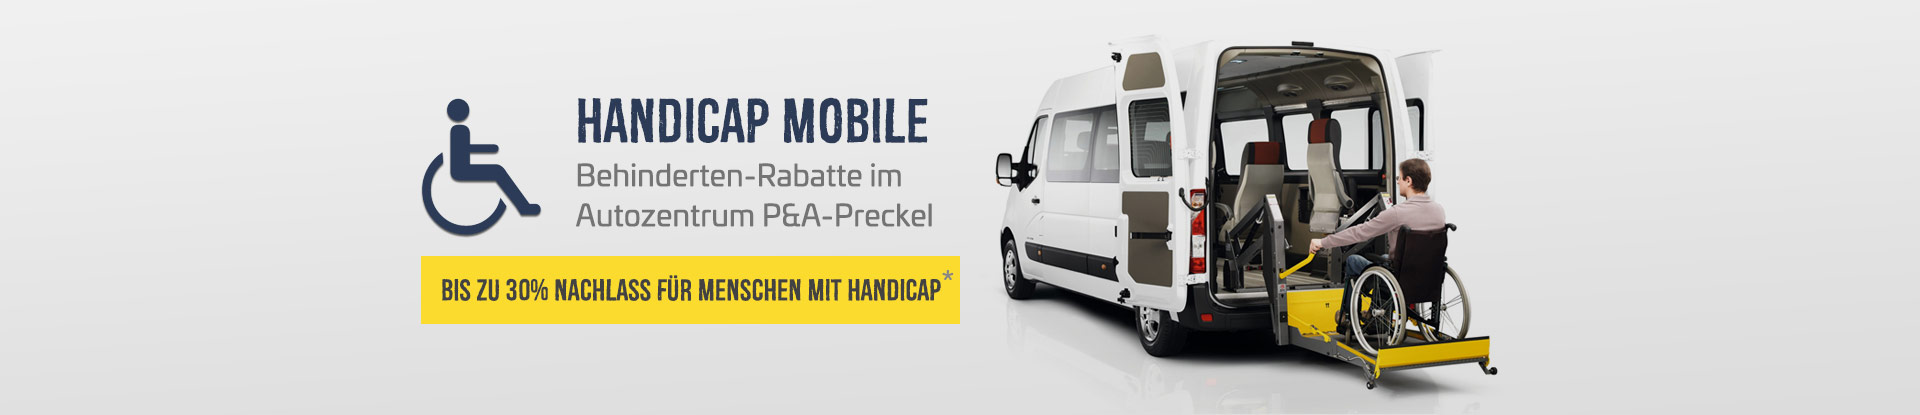 Handicap Mobile vom Autozentrum P&A-Preckel